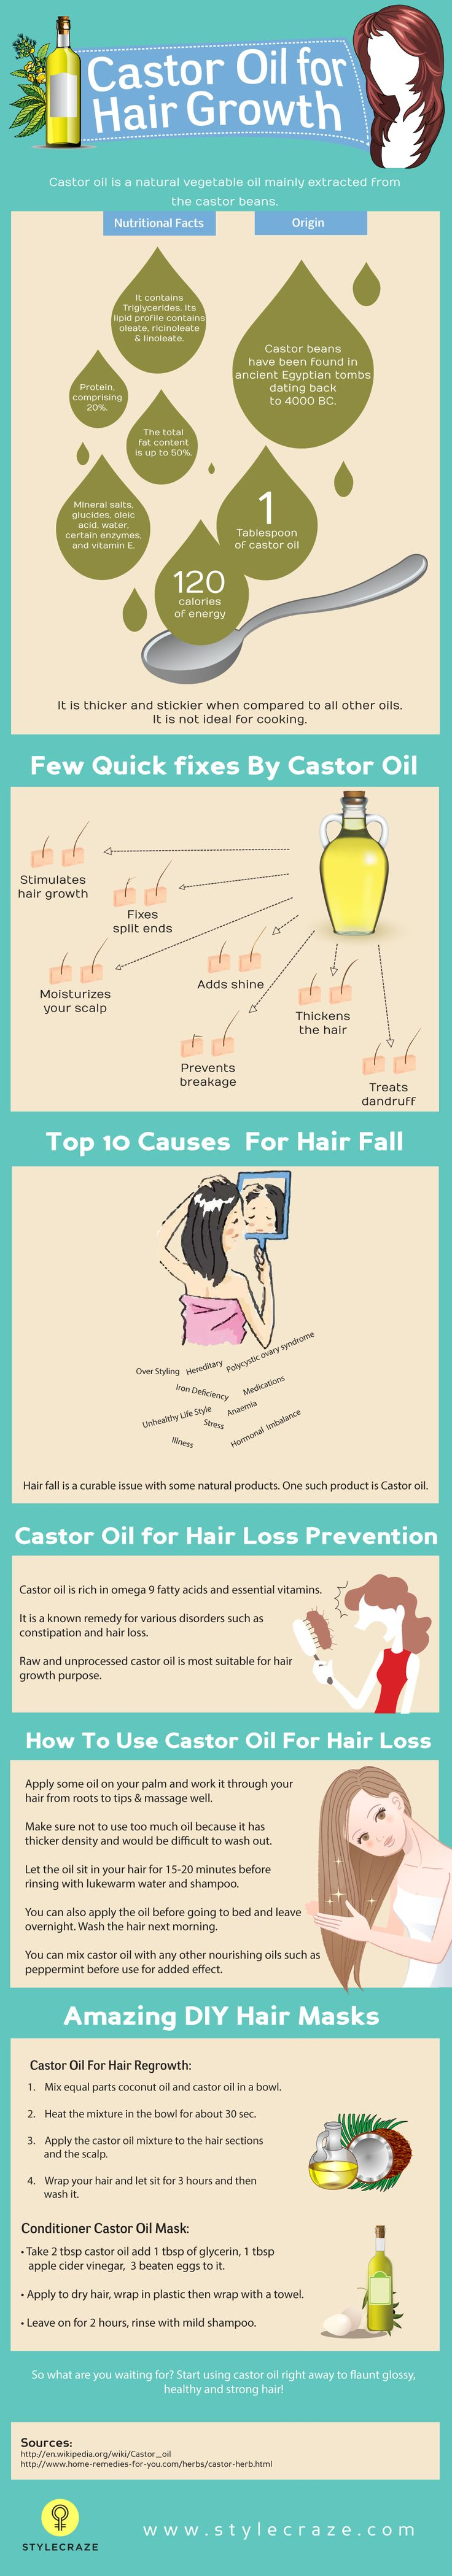 How To Use Castor Oil For Hair Loss